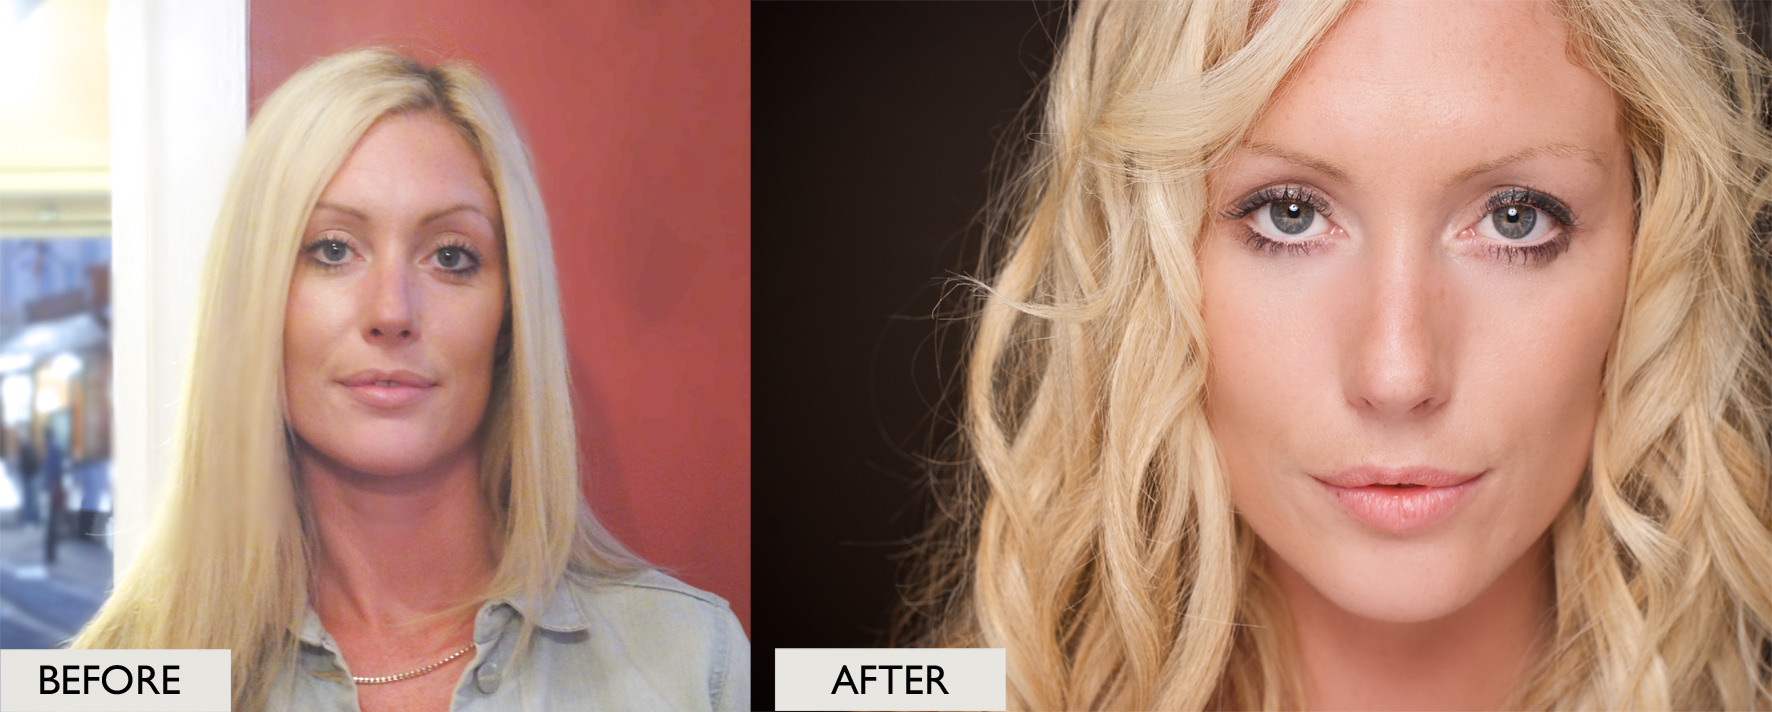 Having said that - here is an example of the transformation process so relax you're going to look amazing!